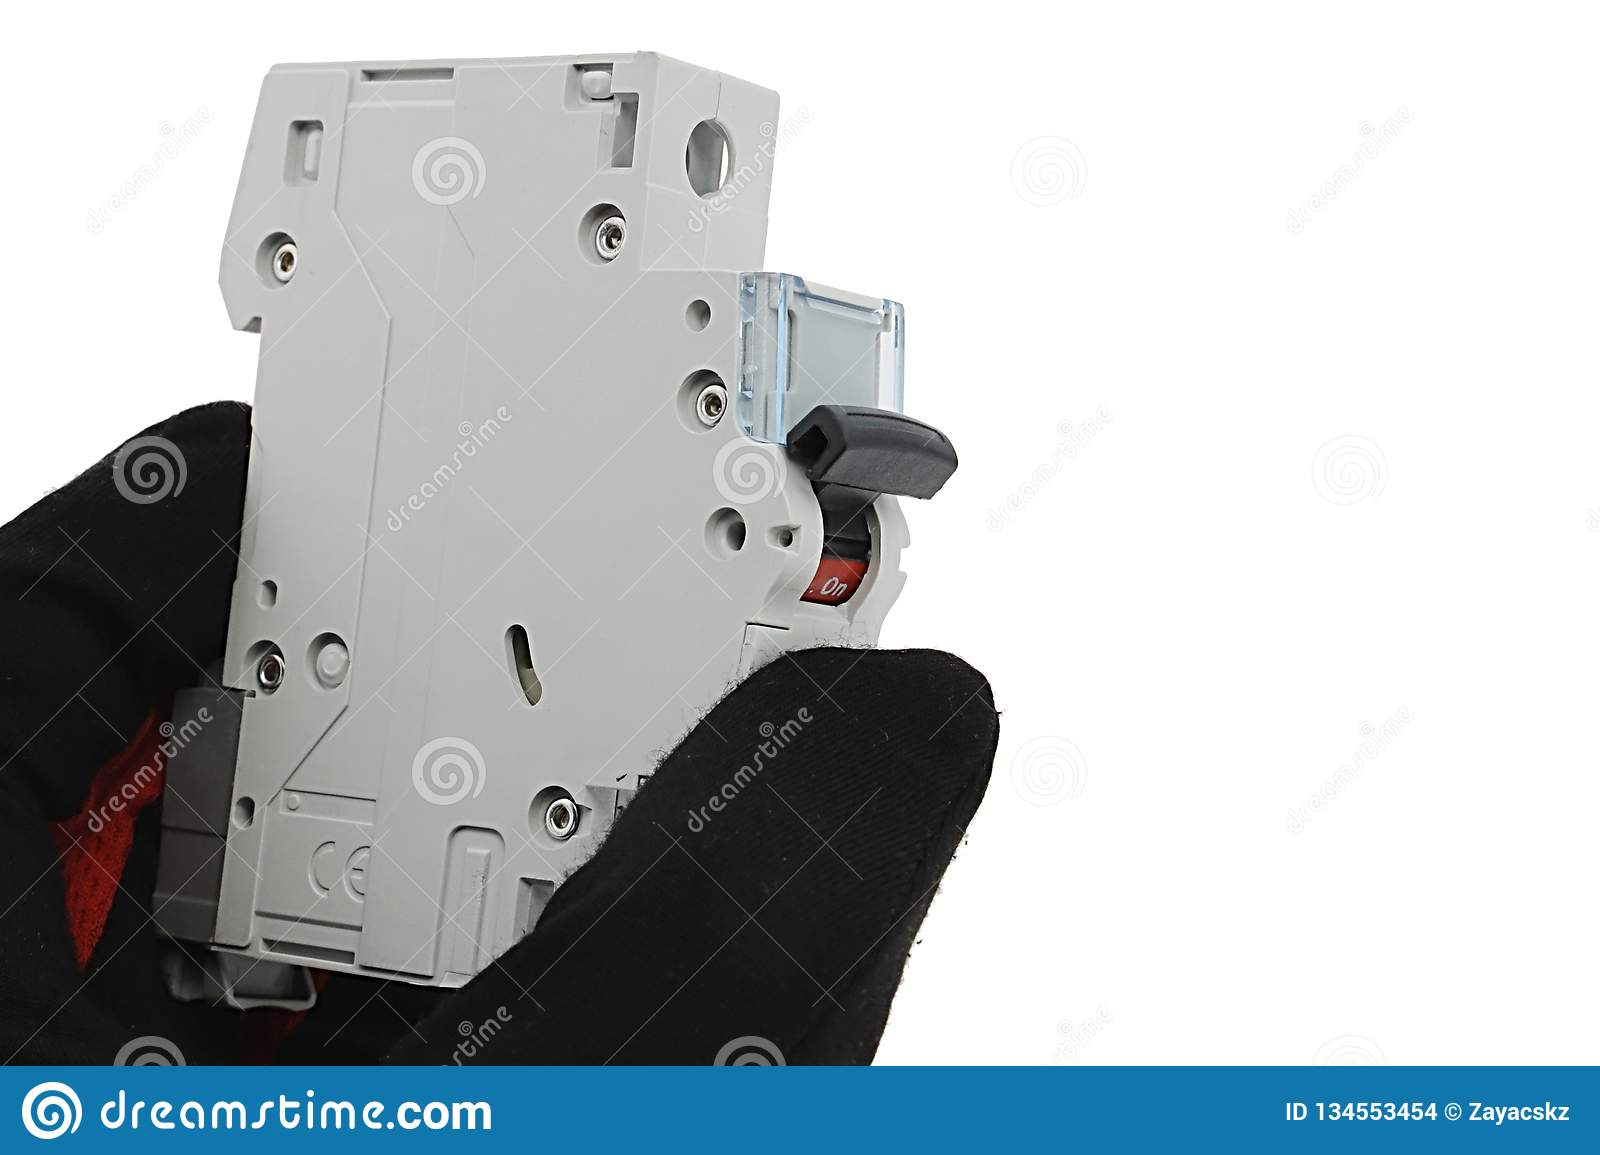 [DIAGRAM_38EU]  Circuit Breaker Module For Domestic Fuse Box With Robust Plastic Lever,  Held In Left Hand In Latex Glove, White Background. Stock Photo - Image of  maintenance, circuit: 134553454 | Vintage Fuse Box With Side Lever |  | Dreamstime.com